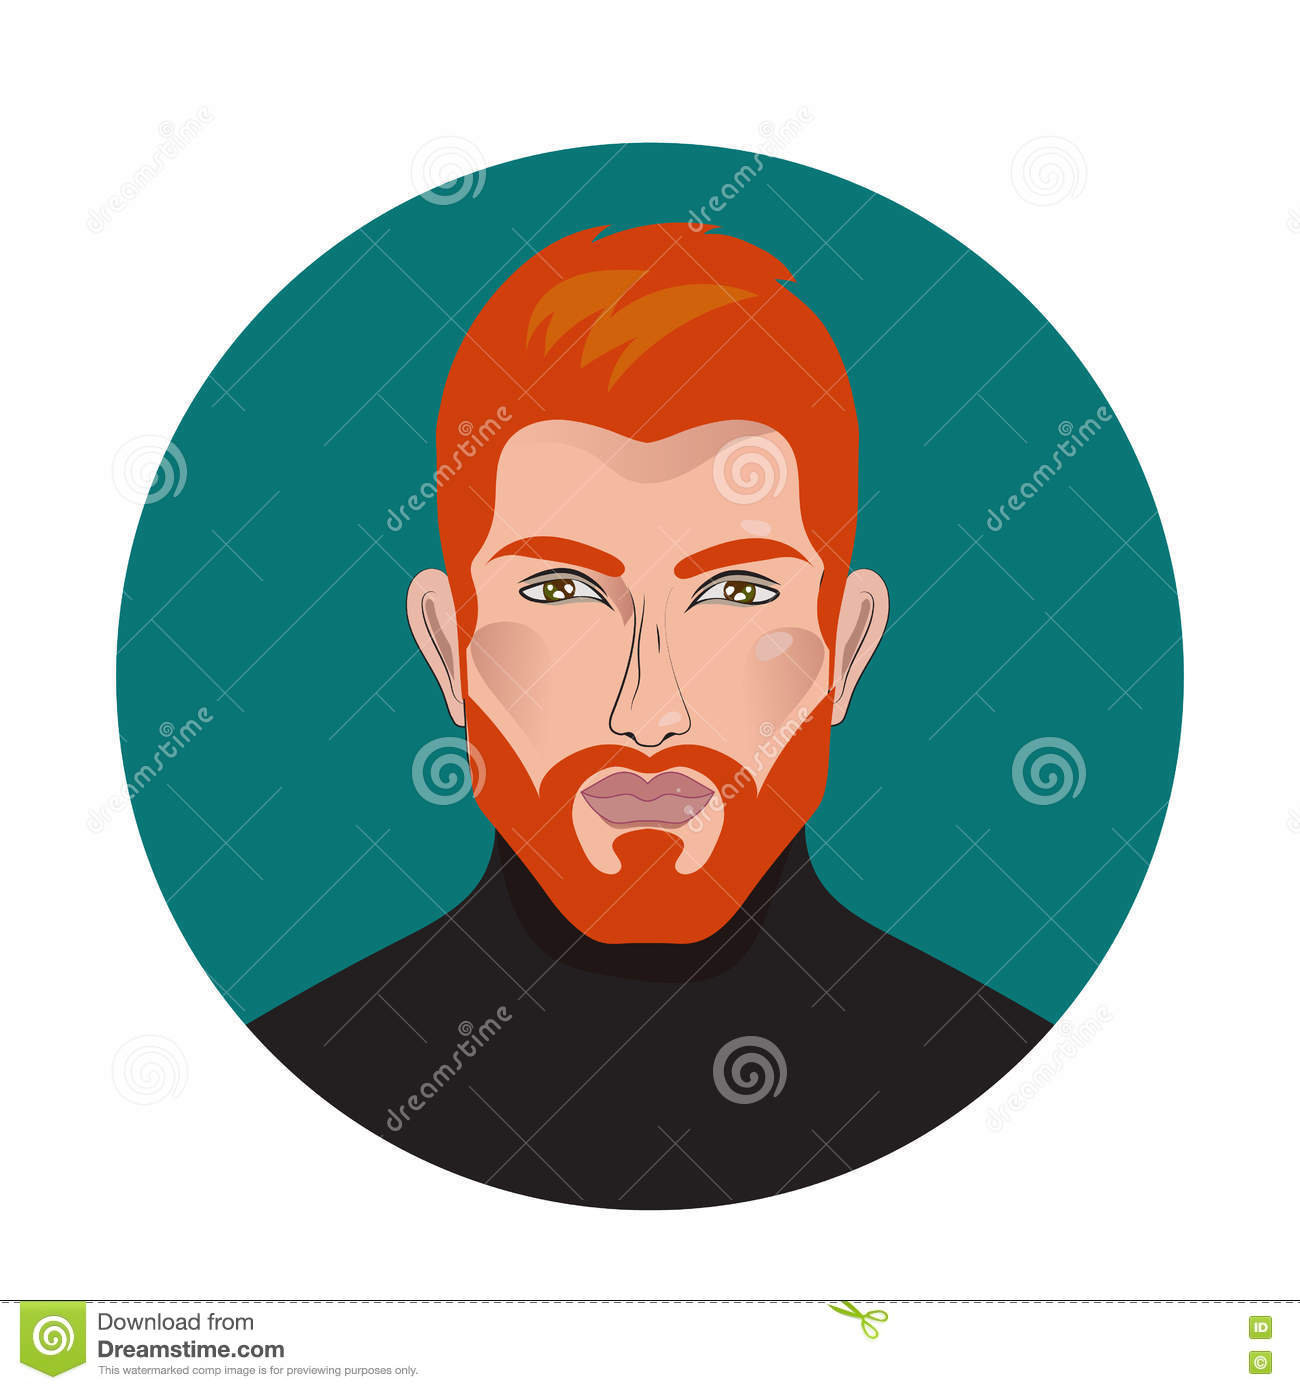 Adult Male Red-Head Celebrities? | Yahoo Answers